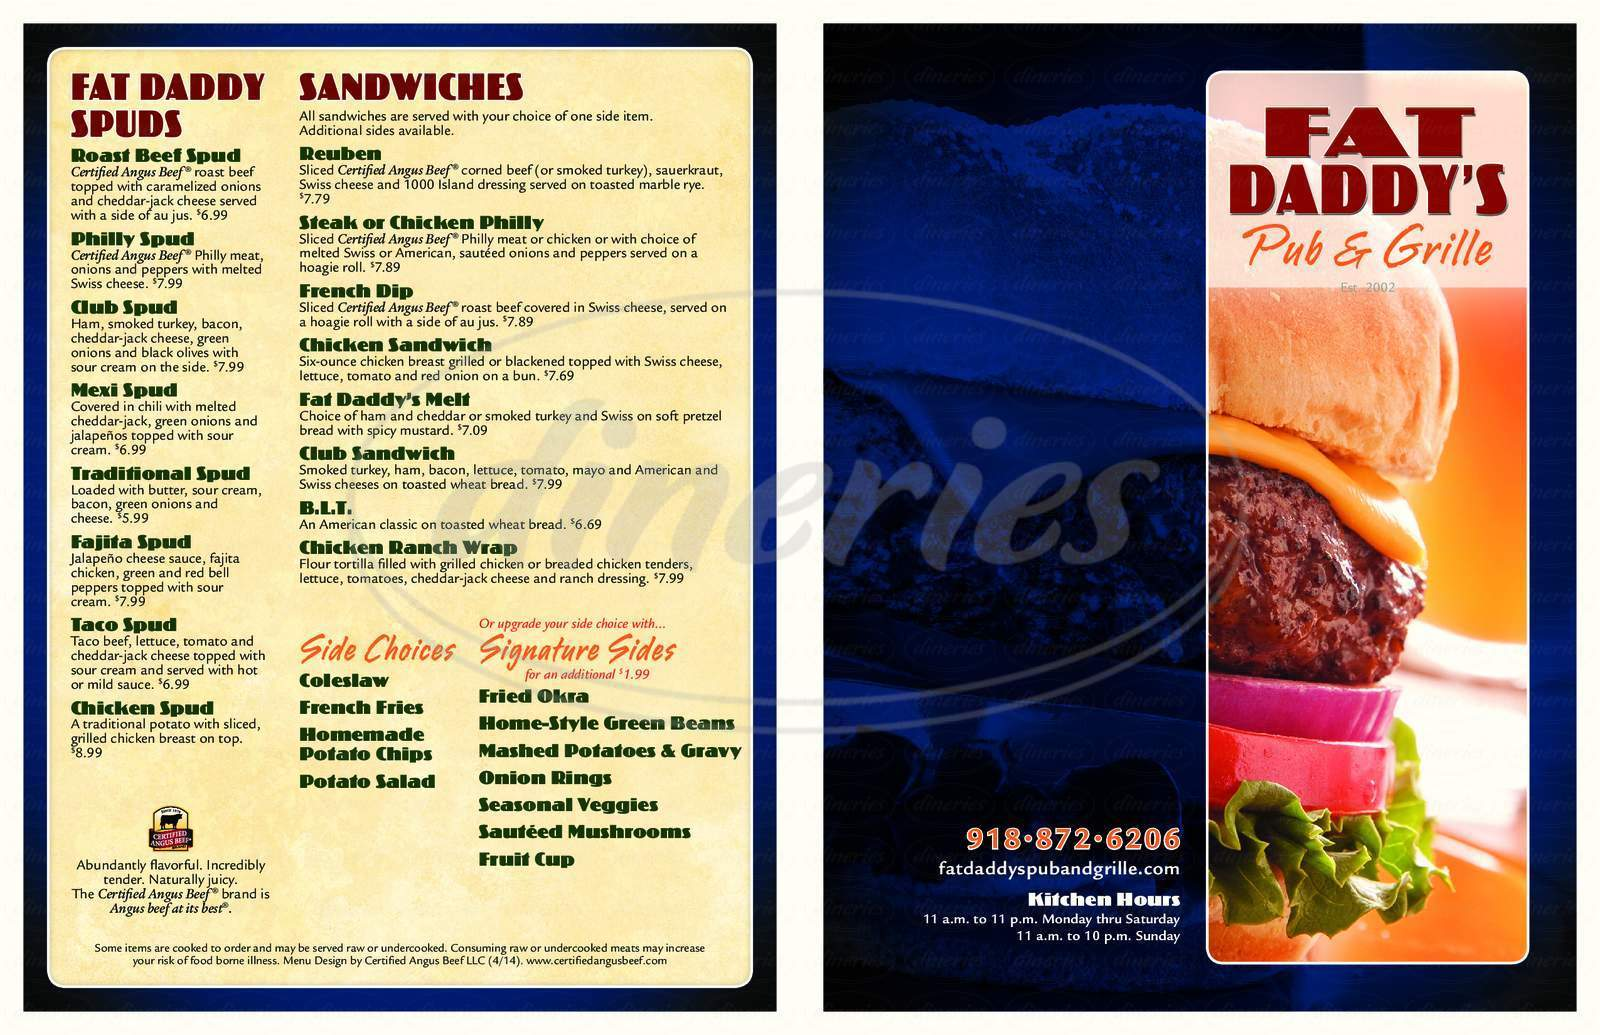 menu for Fat Daddy's Pub & Grille